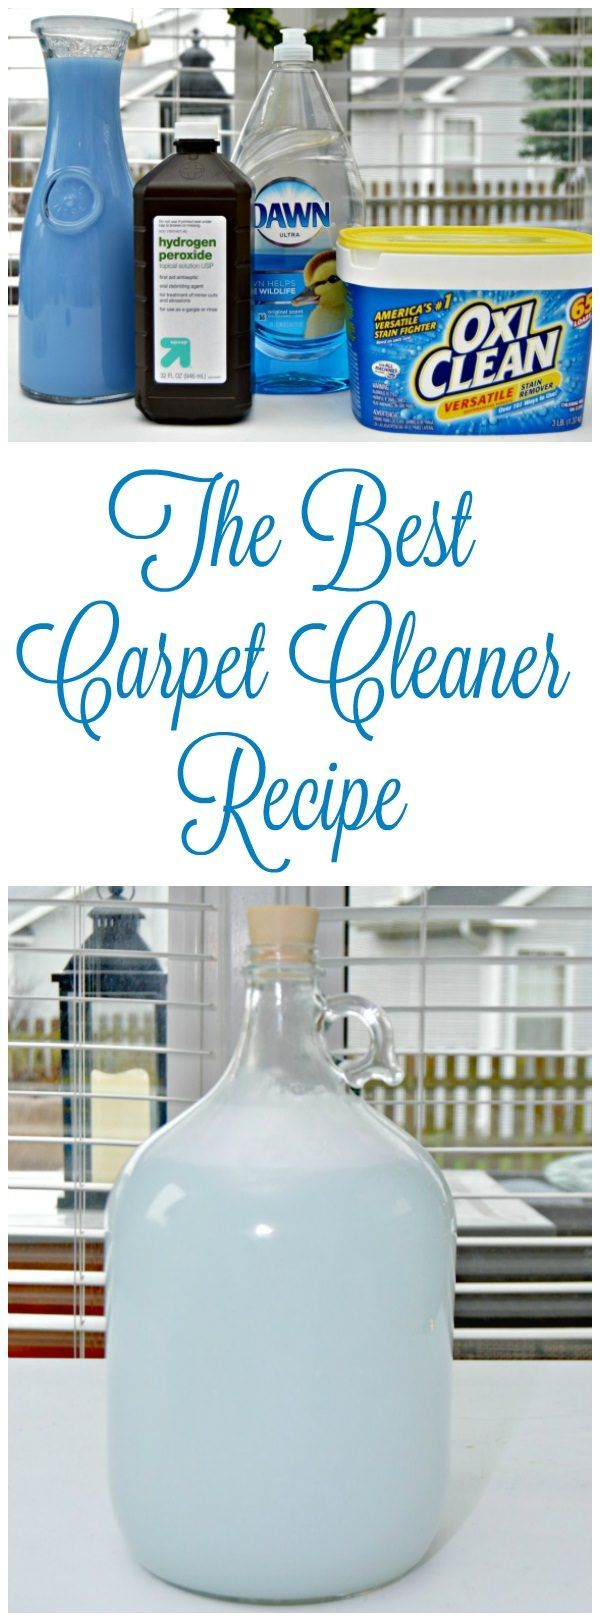 the best homemade carpet cleaner recipes cleaning tips. Black Bedroom Furniture Sets. Home Design Ideas